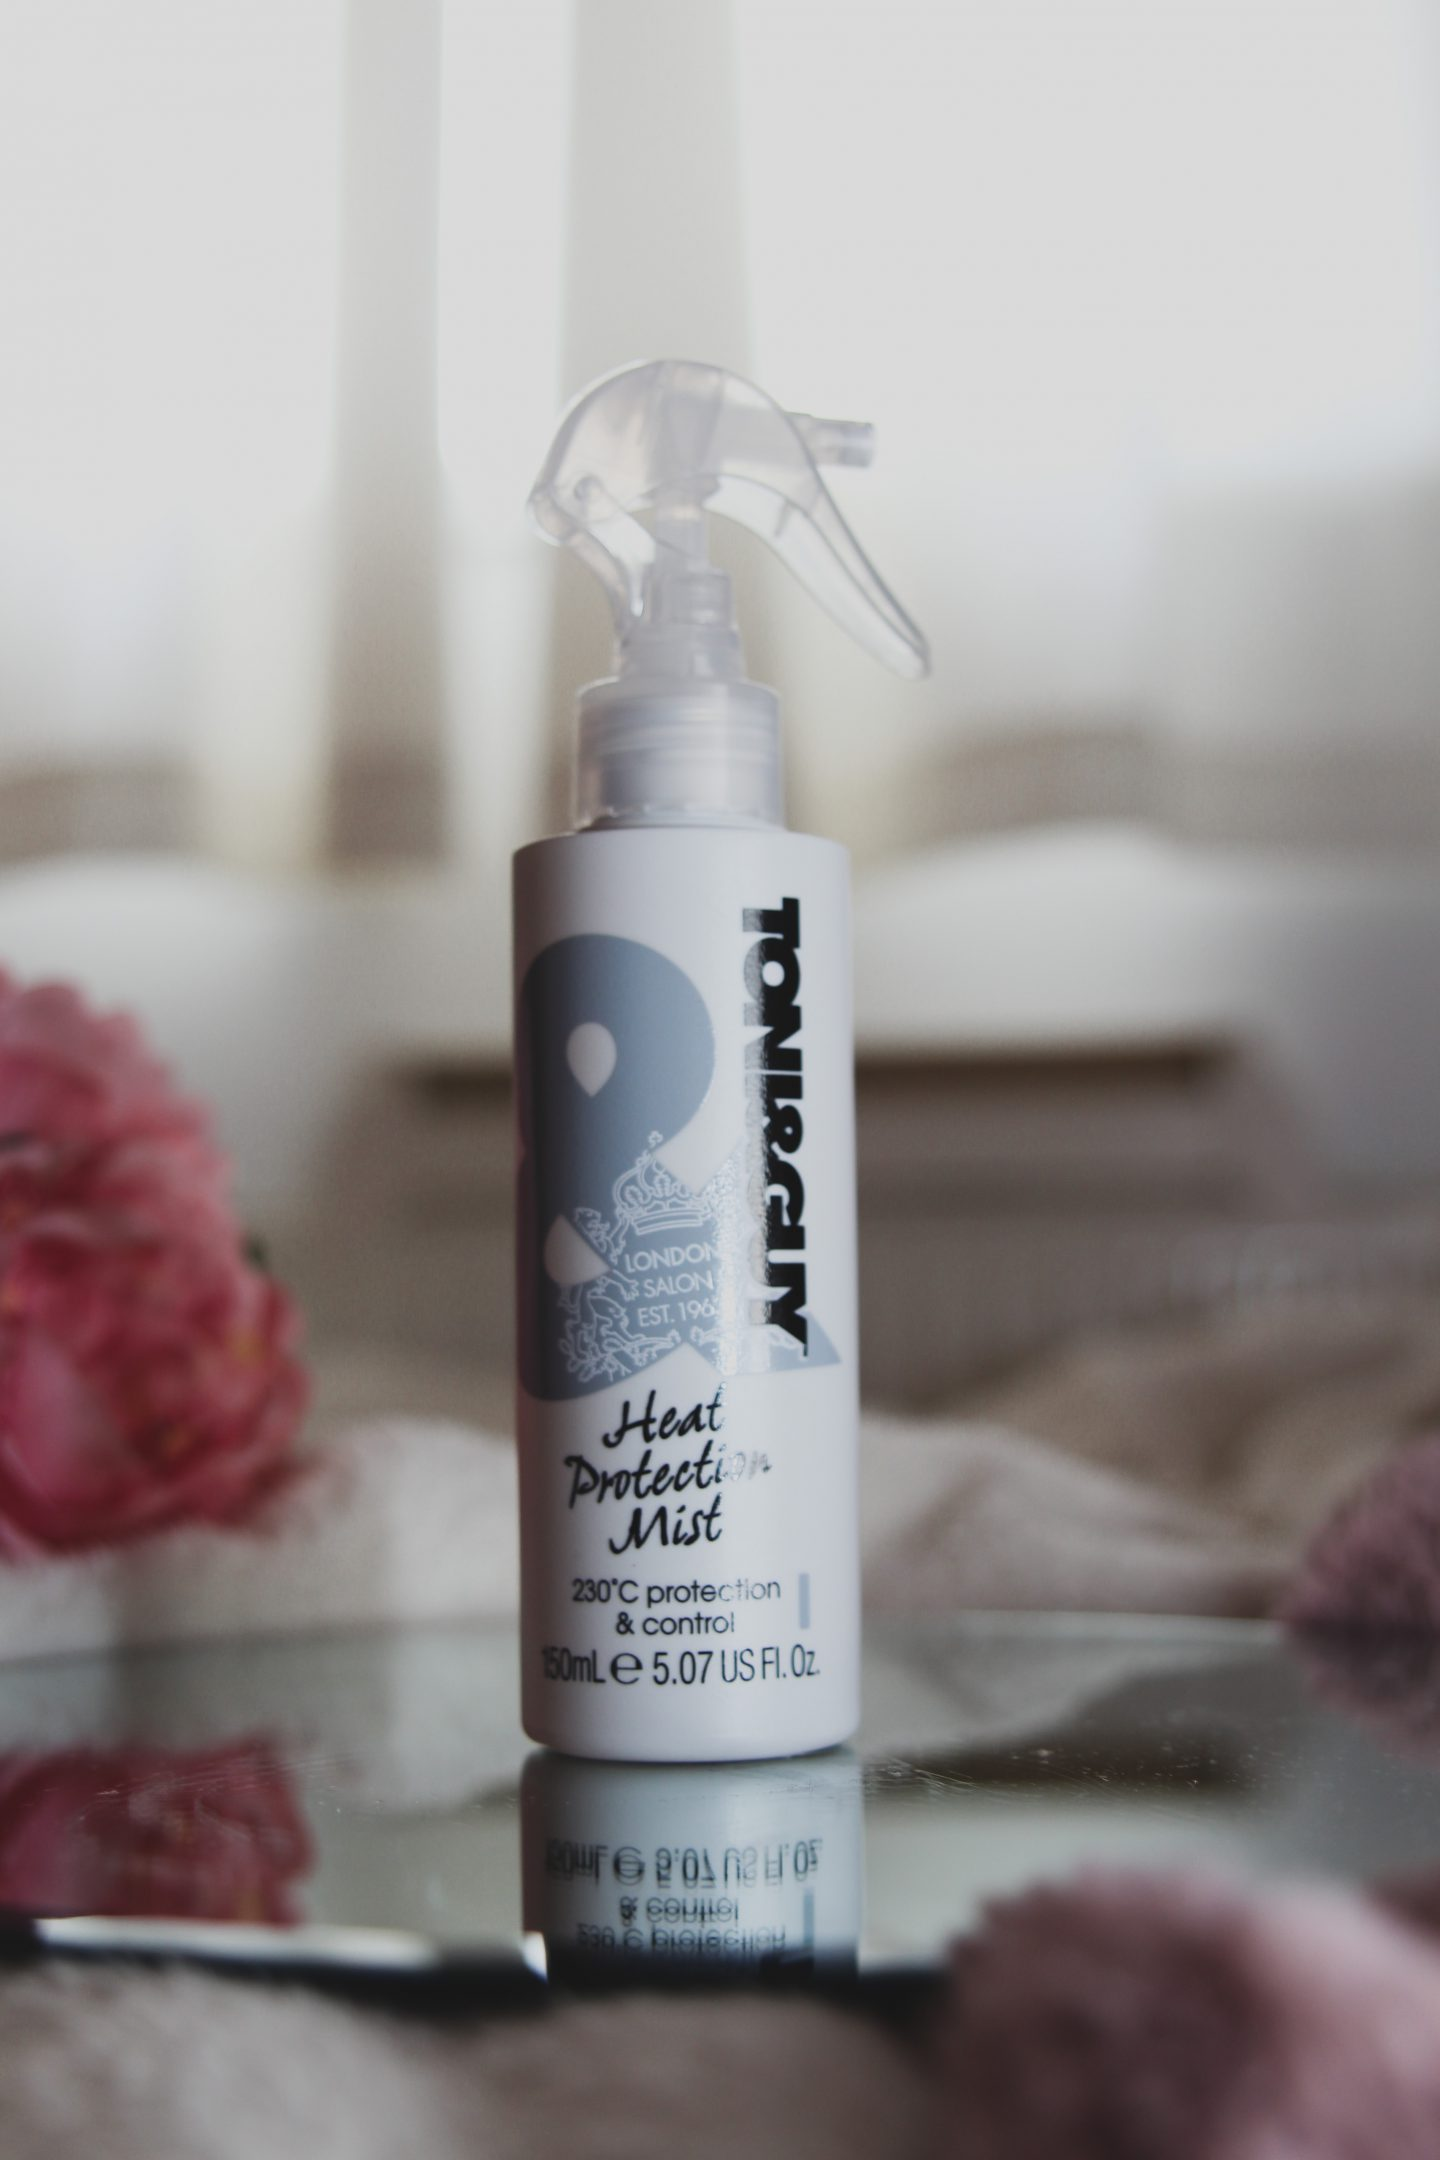 Toni & Guy Heat Protection Mist - Little blonde blog x